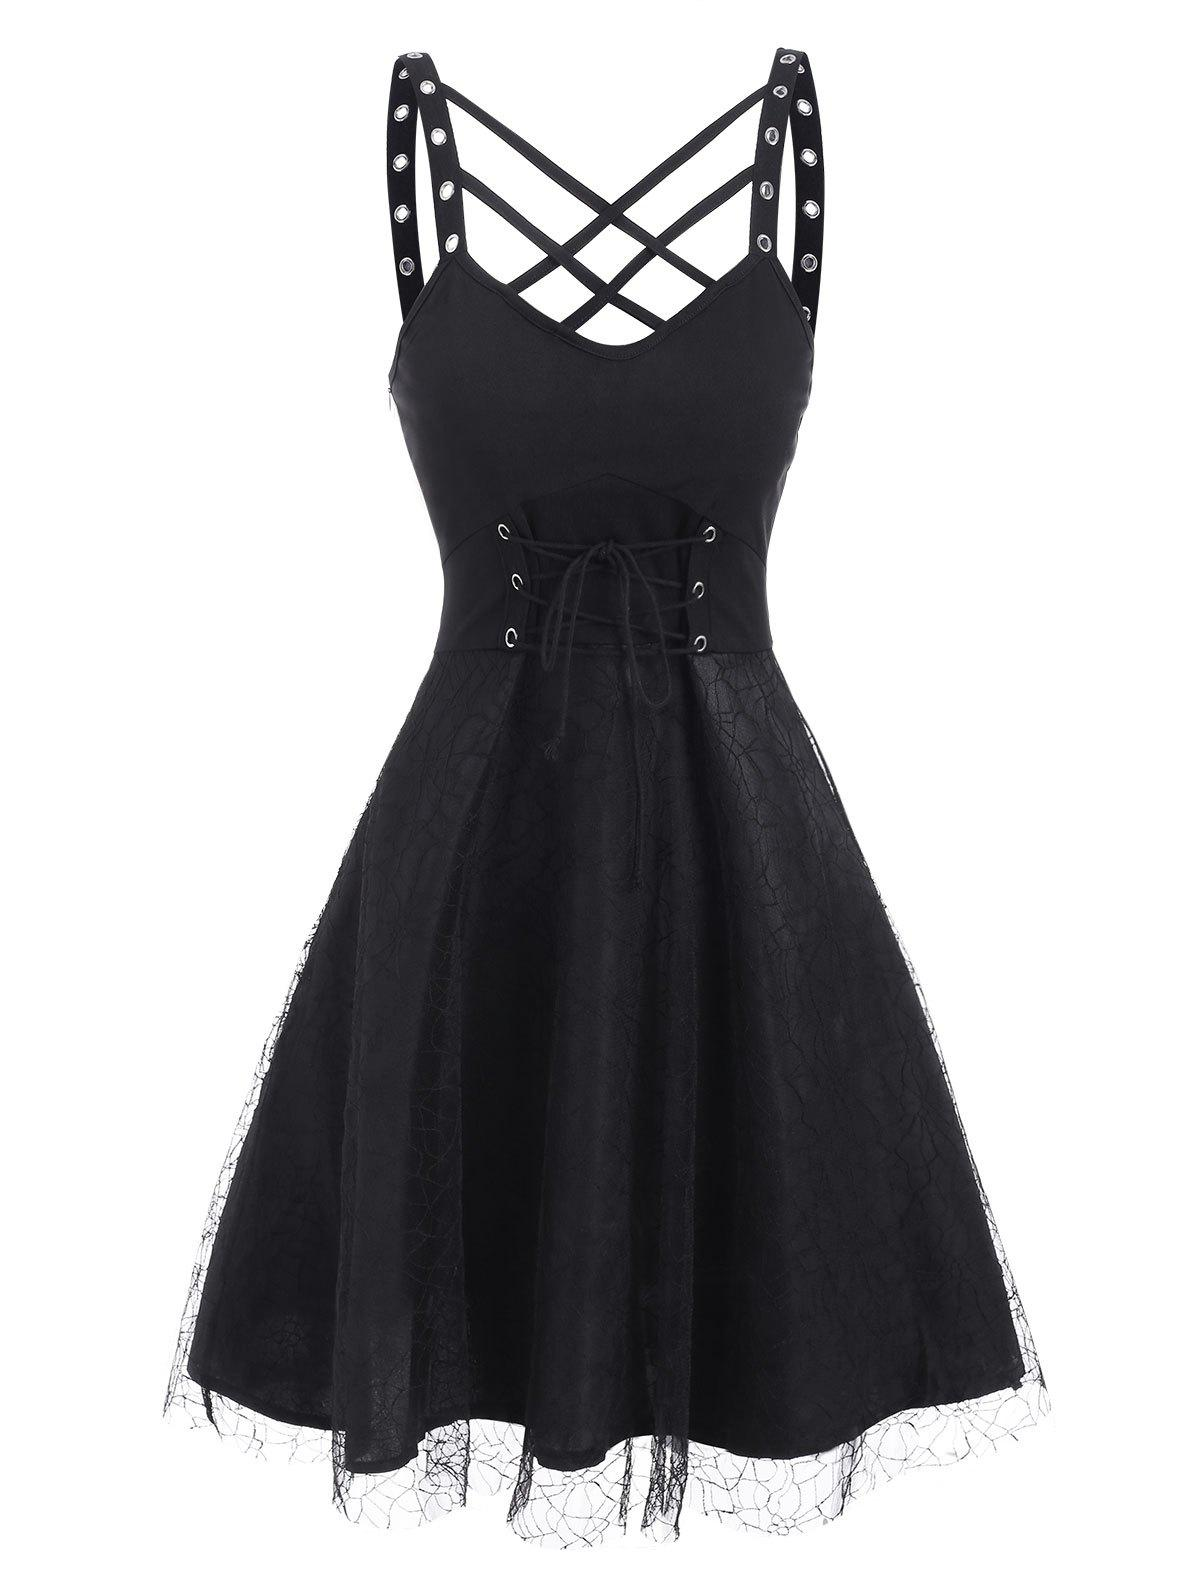 Lattice Grommets Lace-up Mesh Overlay Dress - BLACK M